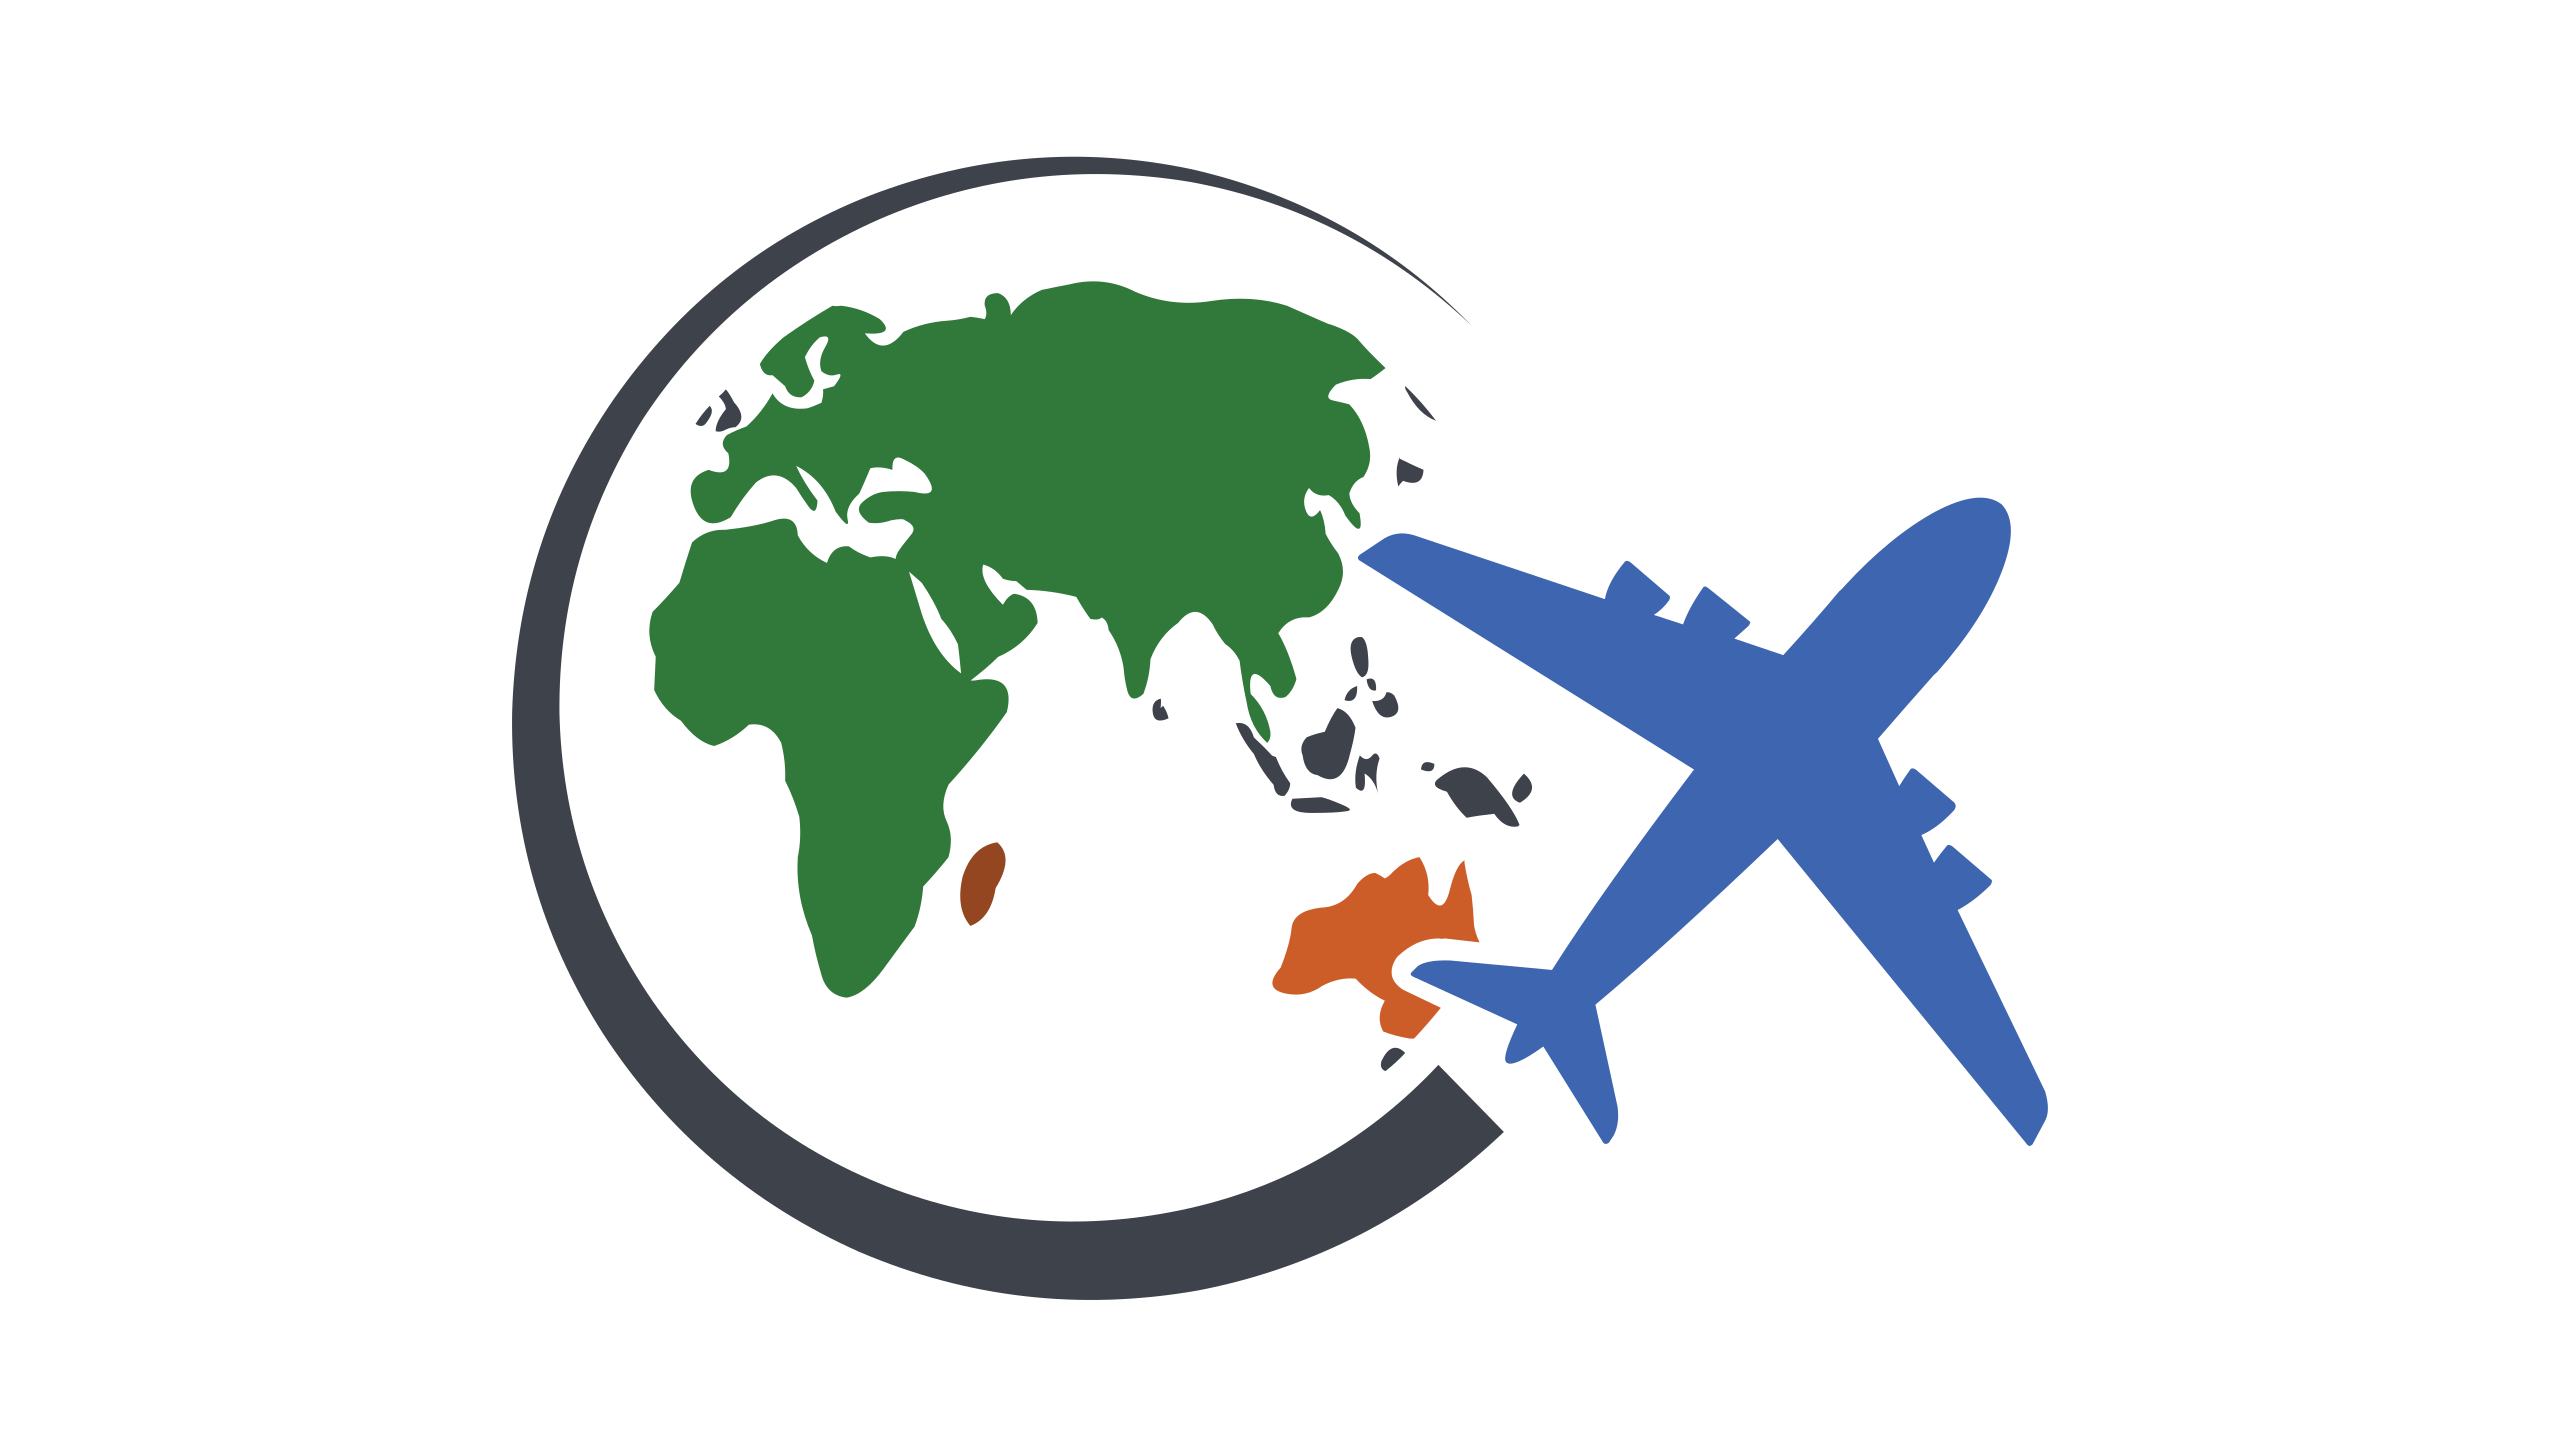 Clipart world round trip. Meet our team and